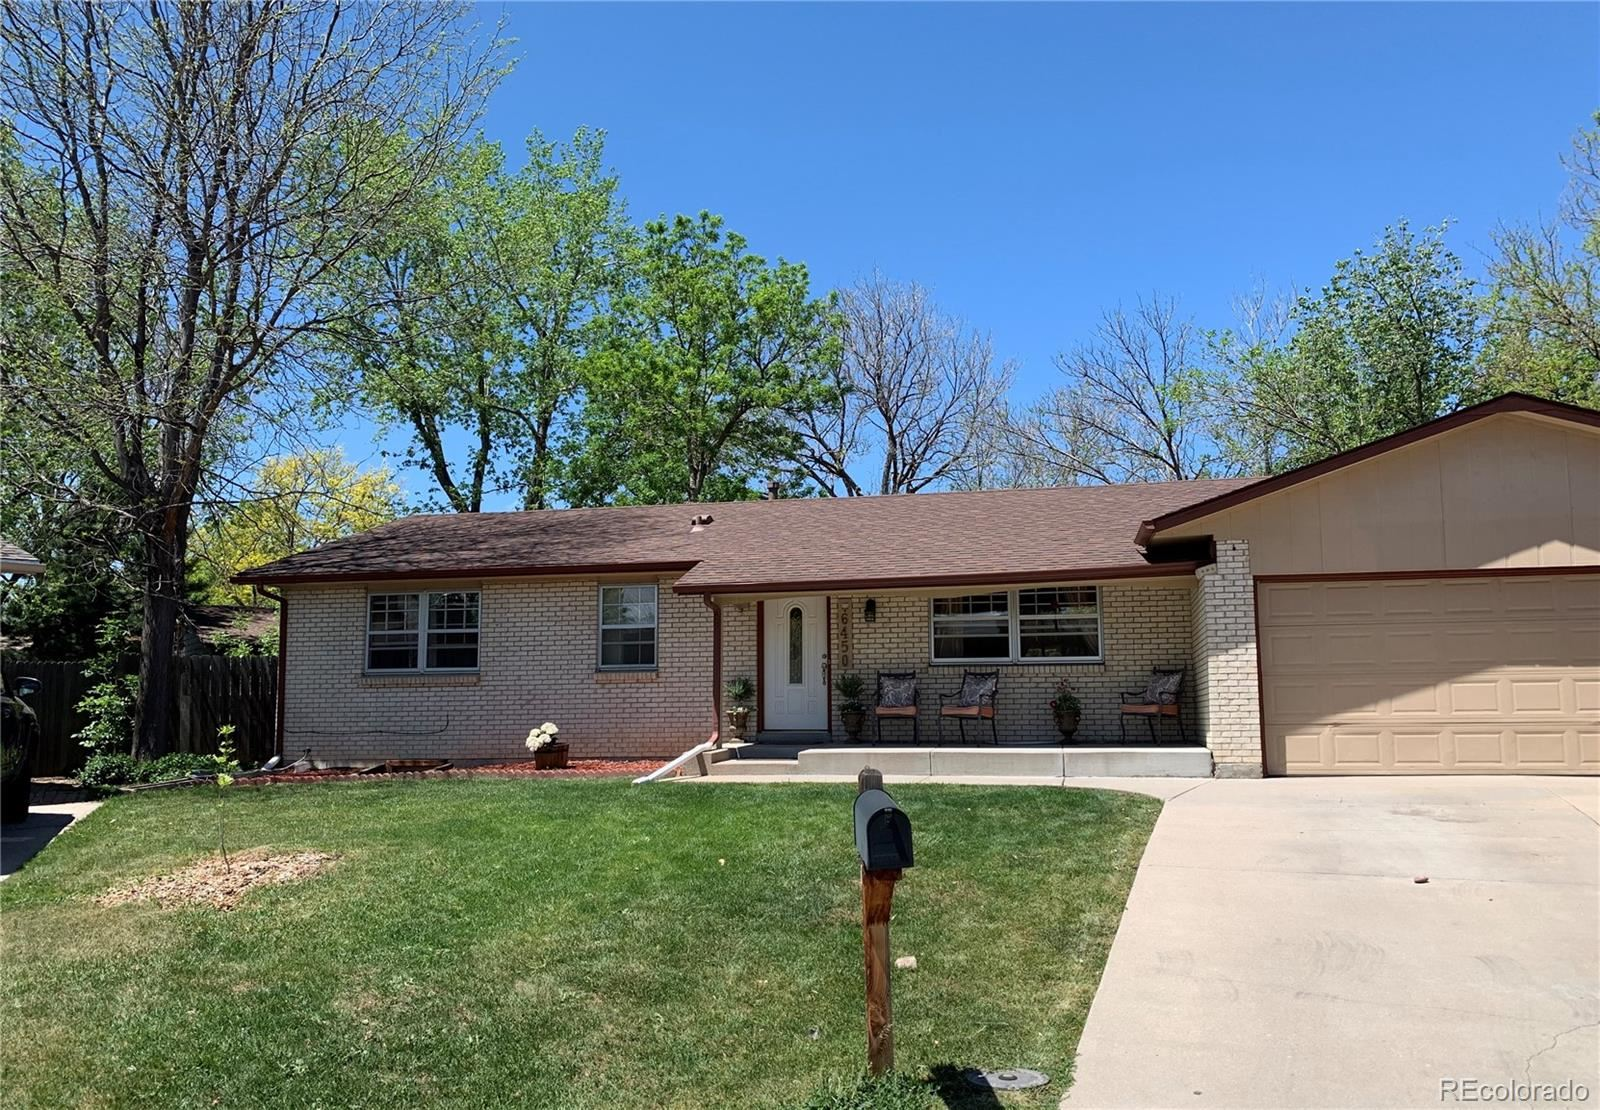 6450 W 83 rd Place, Arvada, CO 80003 - #: 2798511